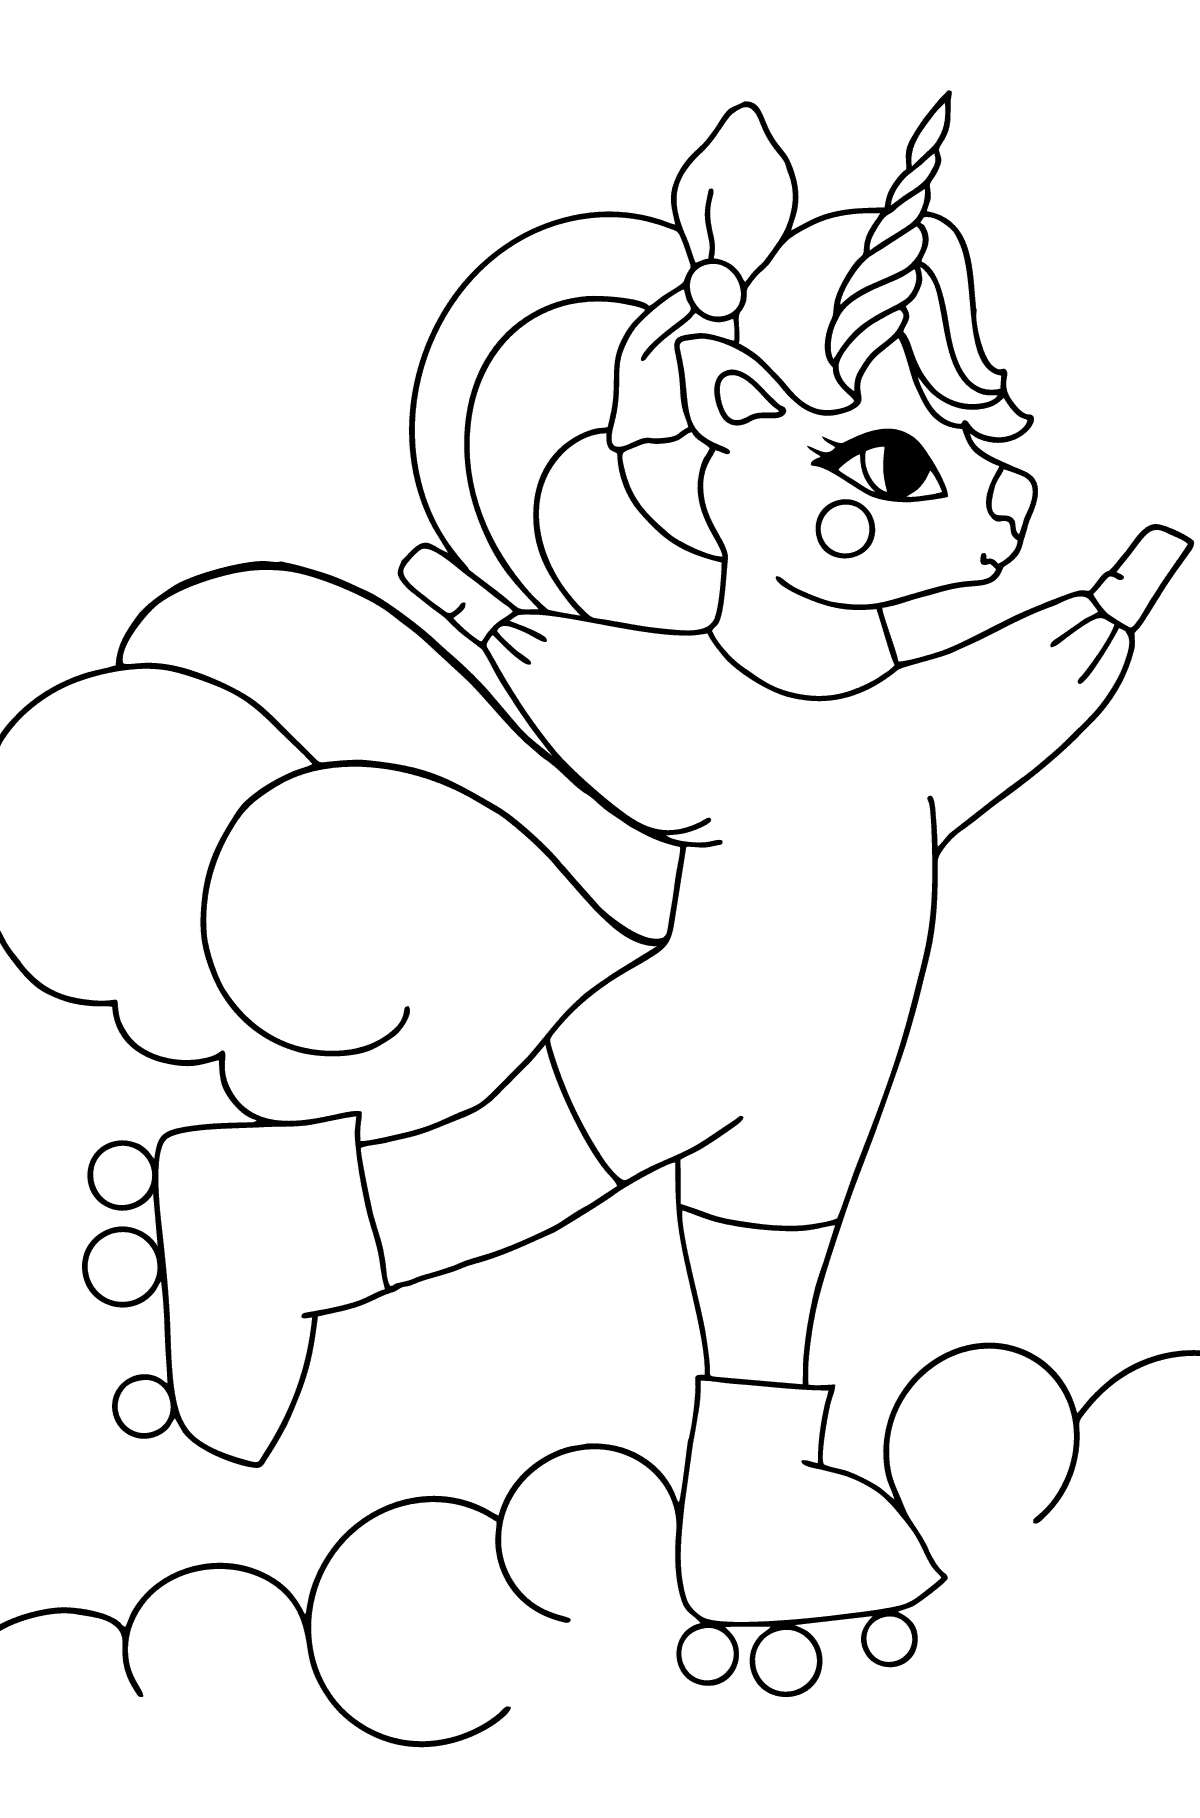 Complex Coloring Page - A Unicorn on Skates - Coloring Pages for Children